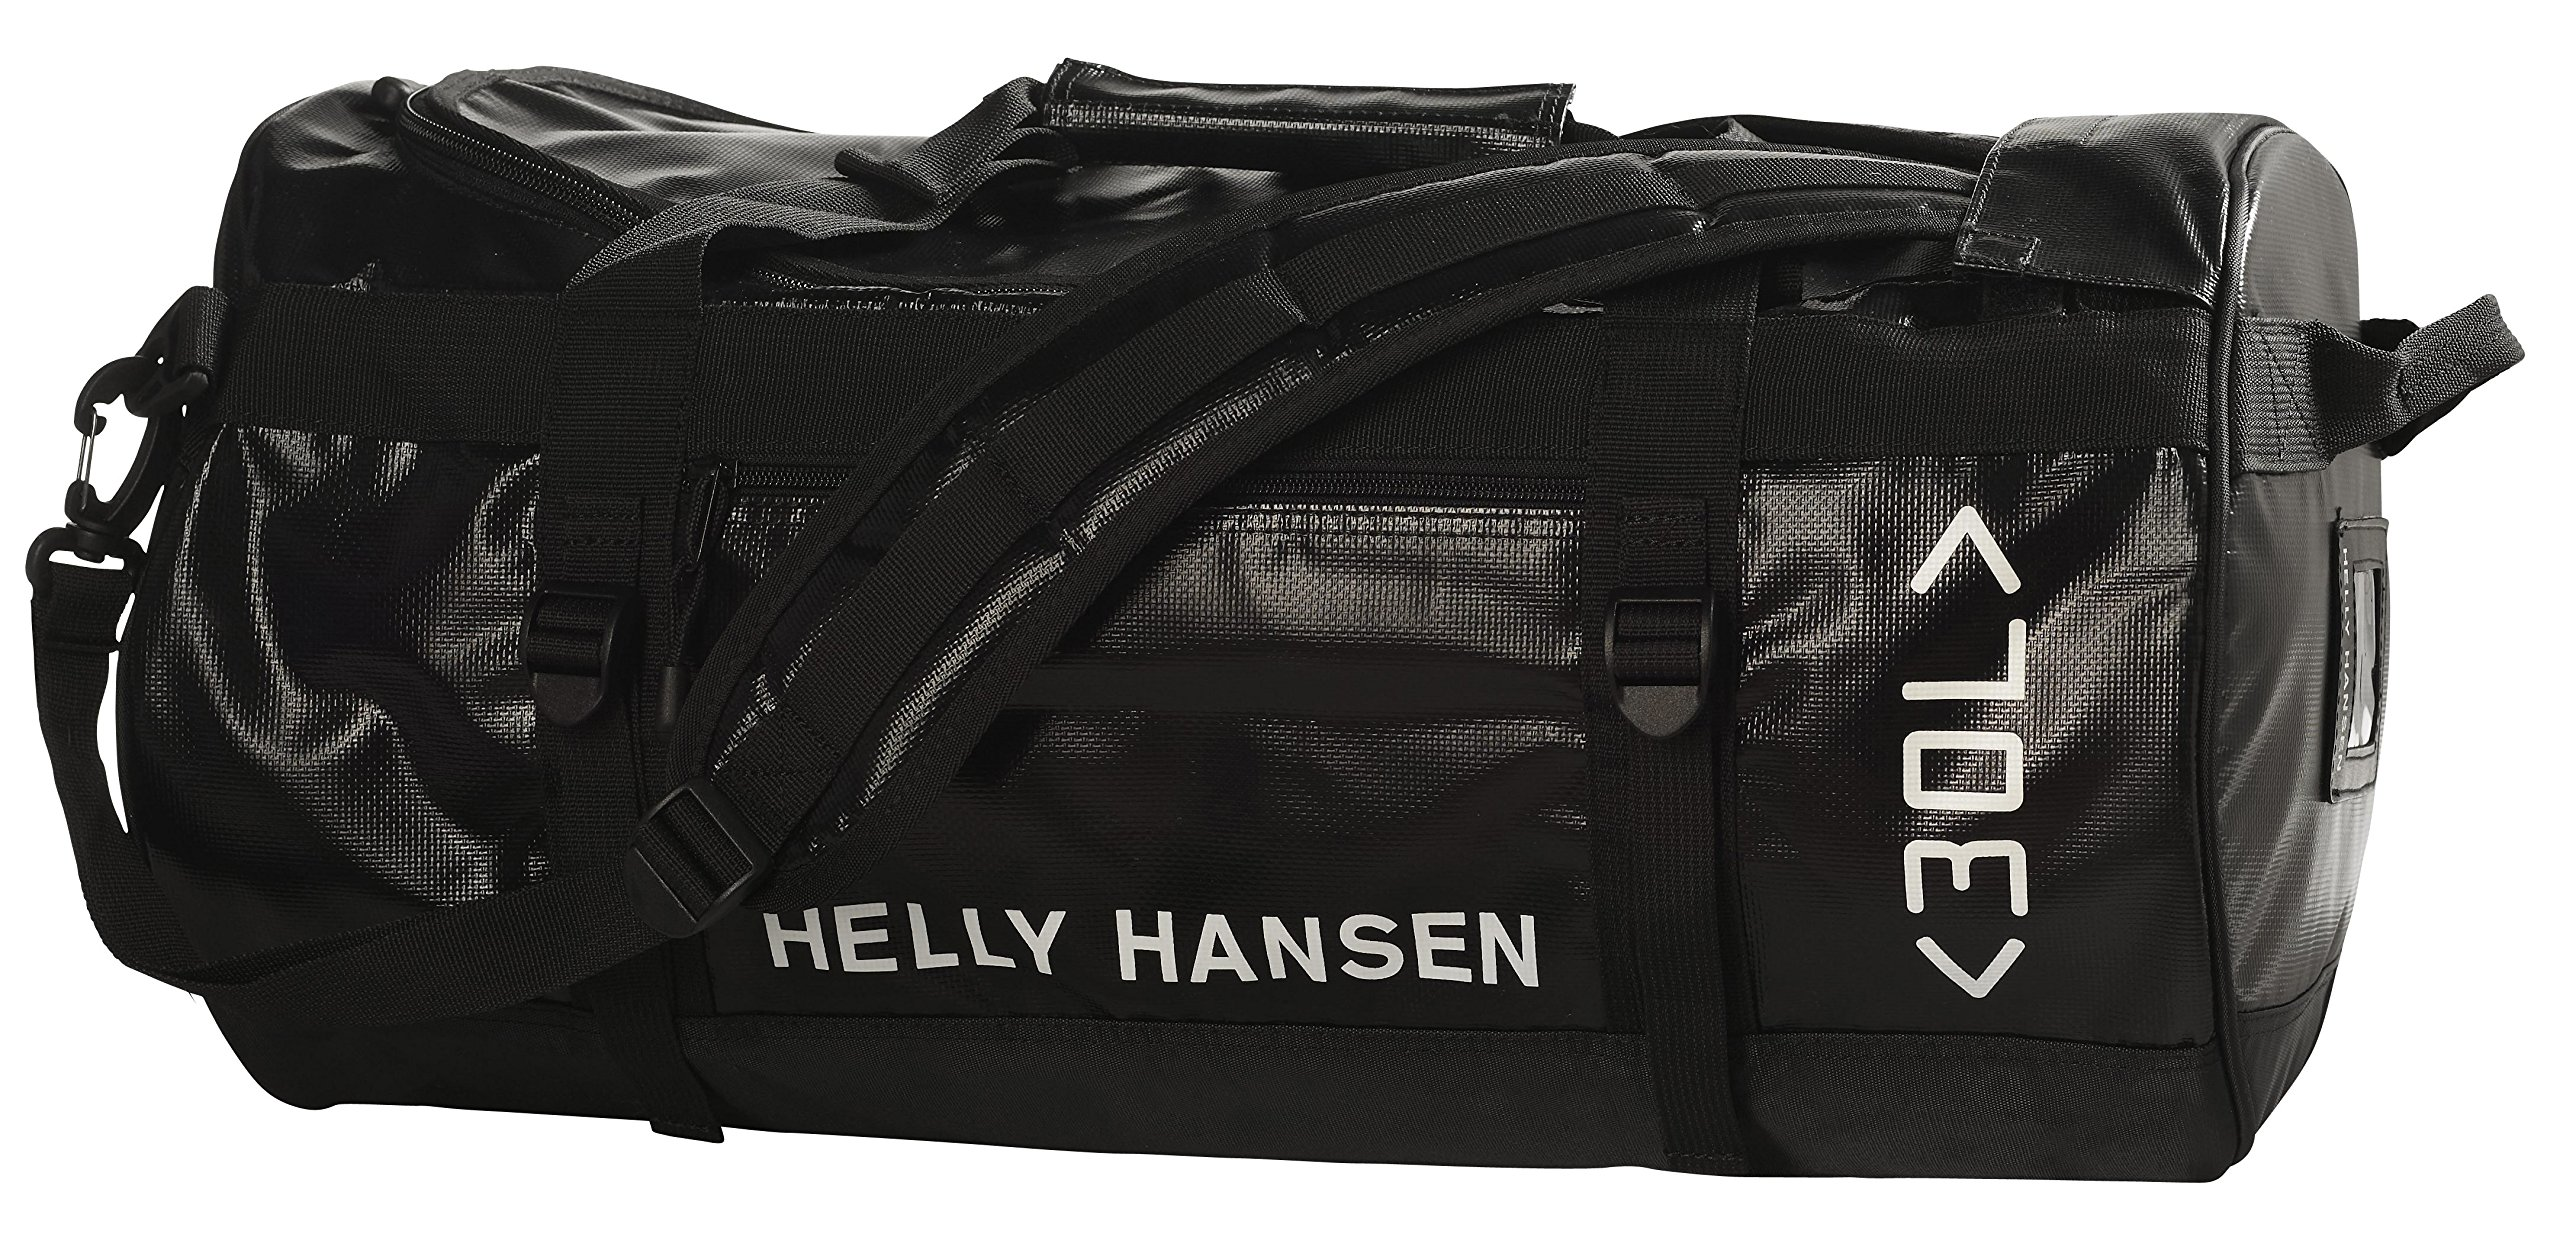 Helly Hansen Classic Duffel Bag with Backpack Straps, 990 Black, 30-Liter (Small)